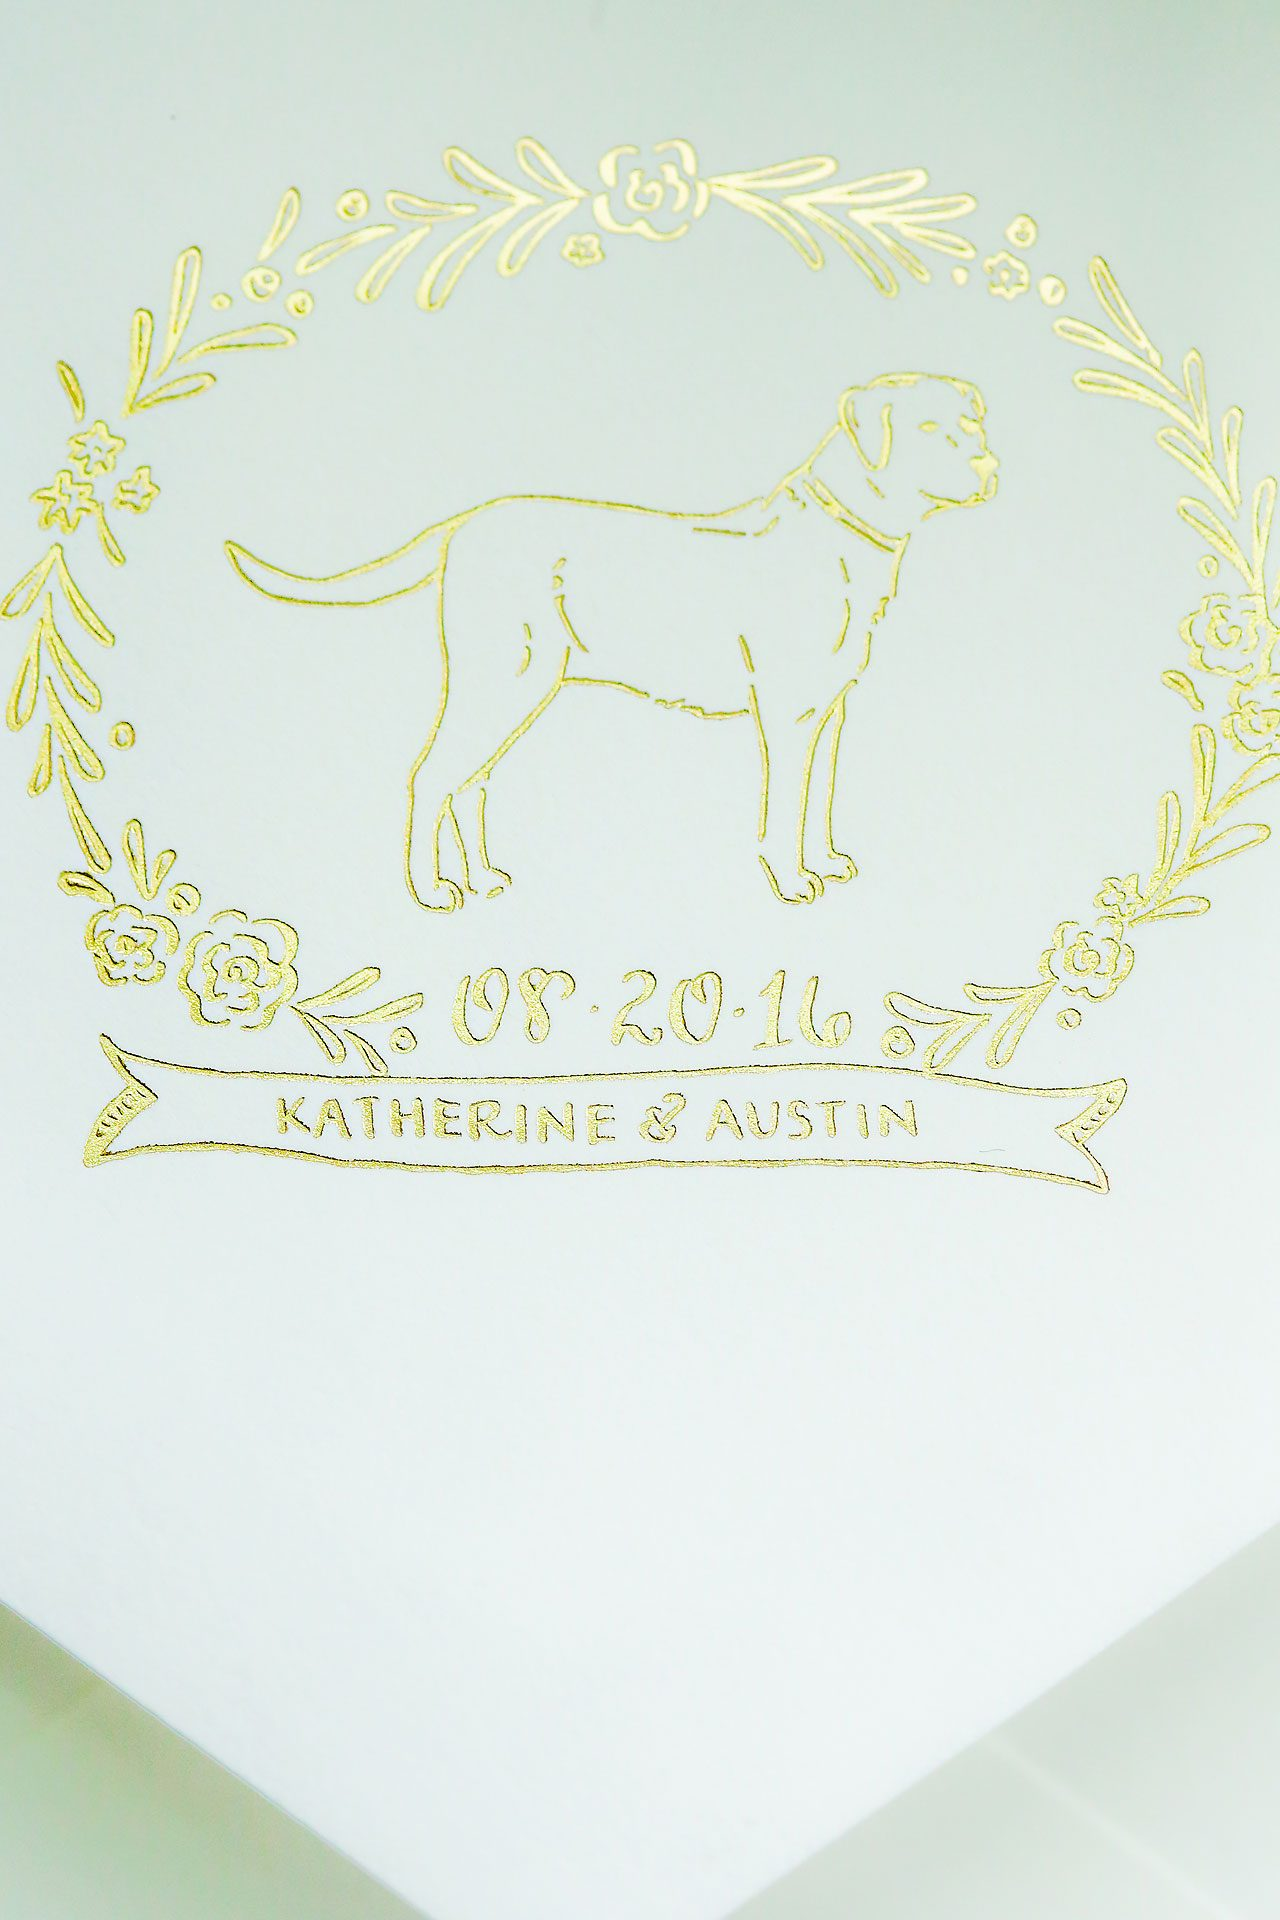 015 katherine austin scottish rite indianapolis wedding